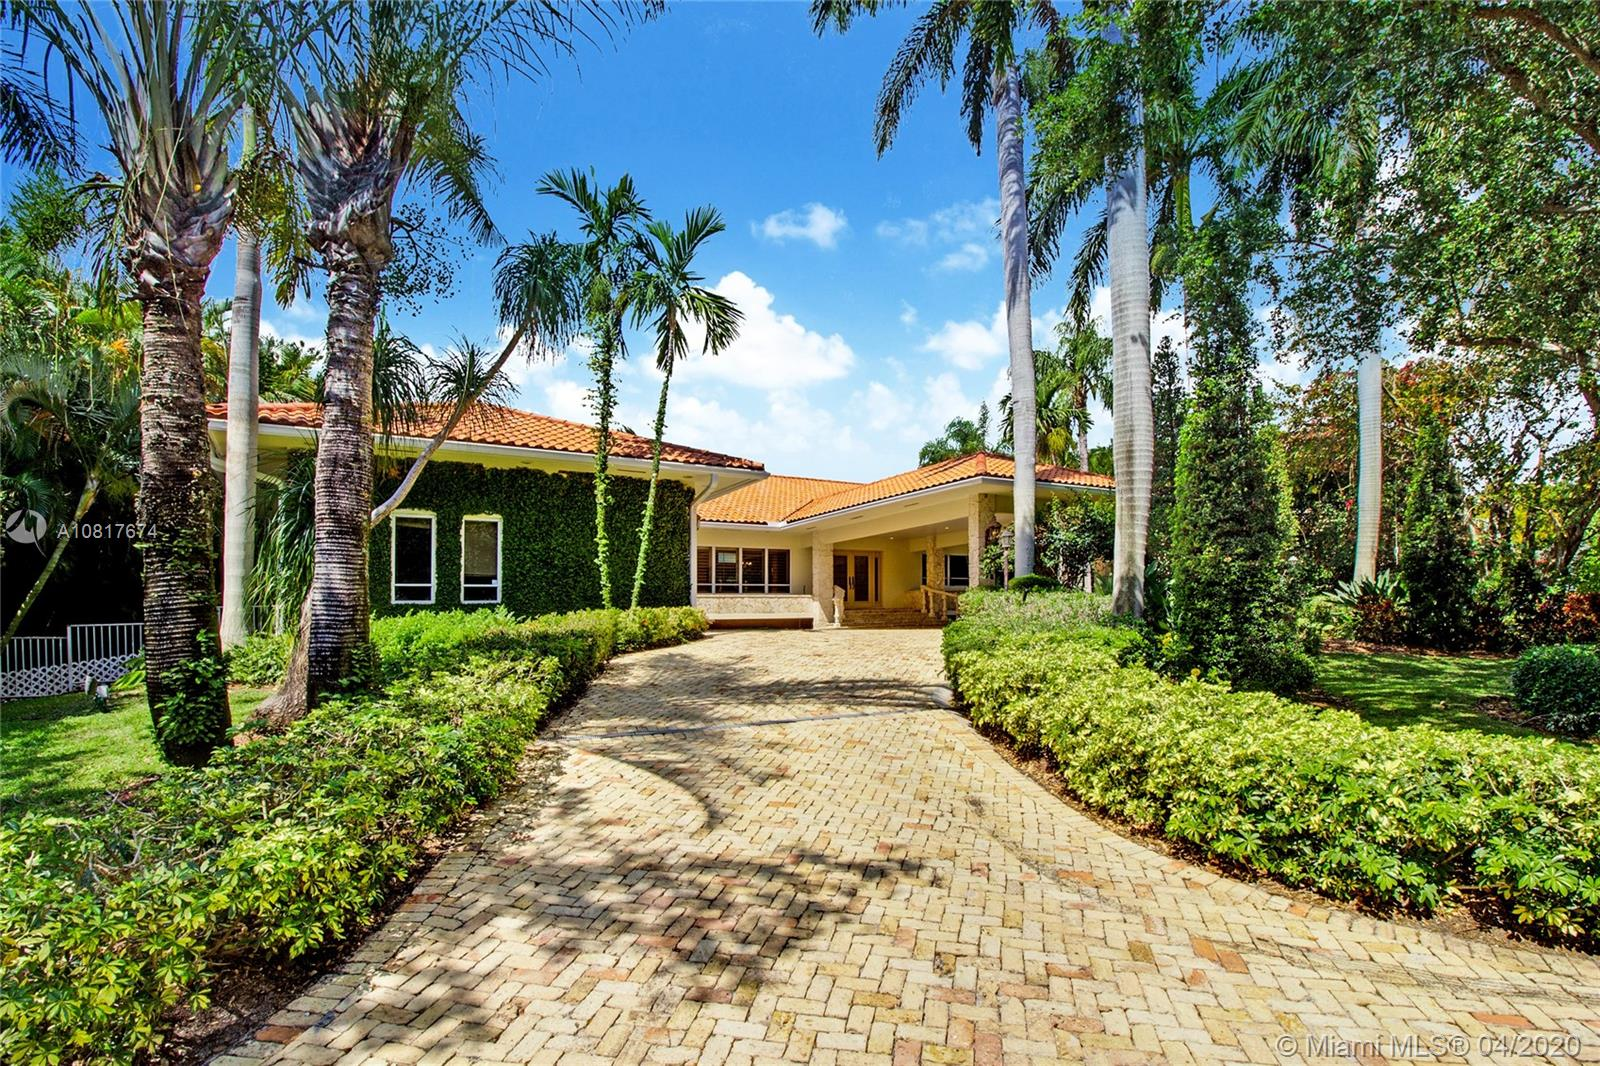 236  Costanera Rd #n/a For Sale A10817674, FL